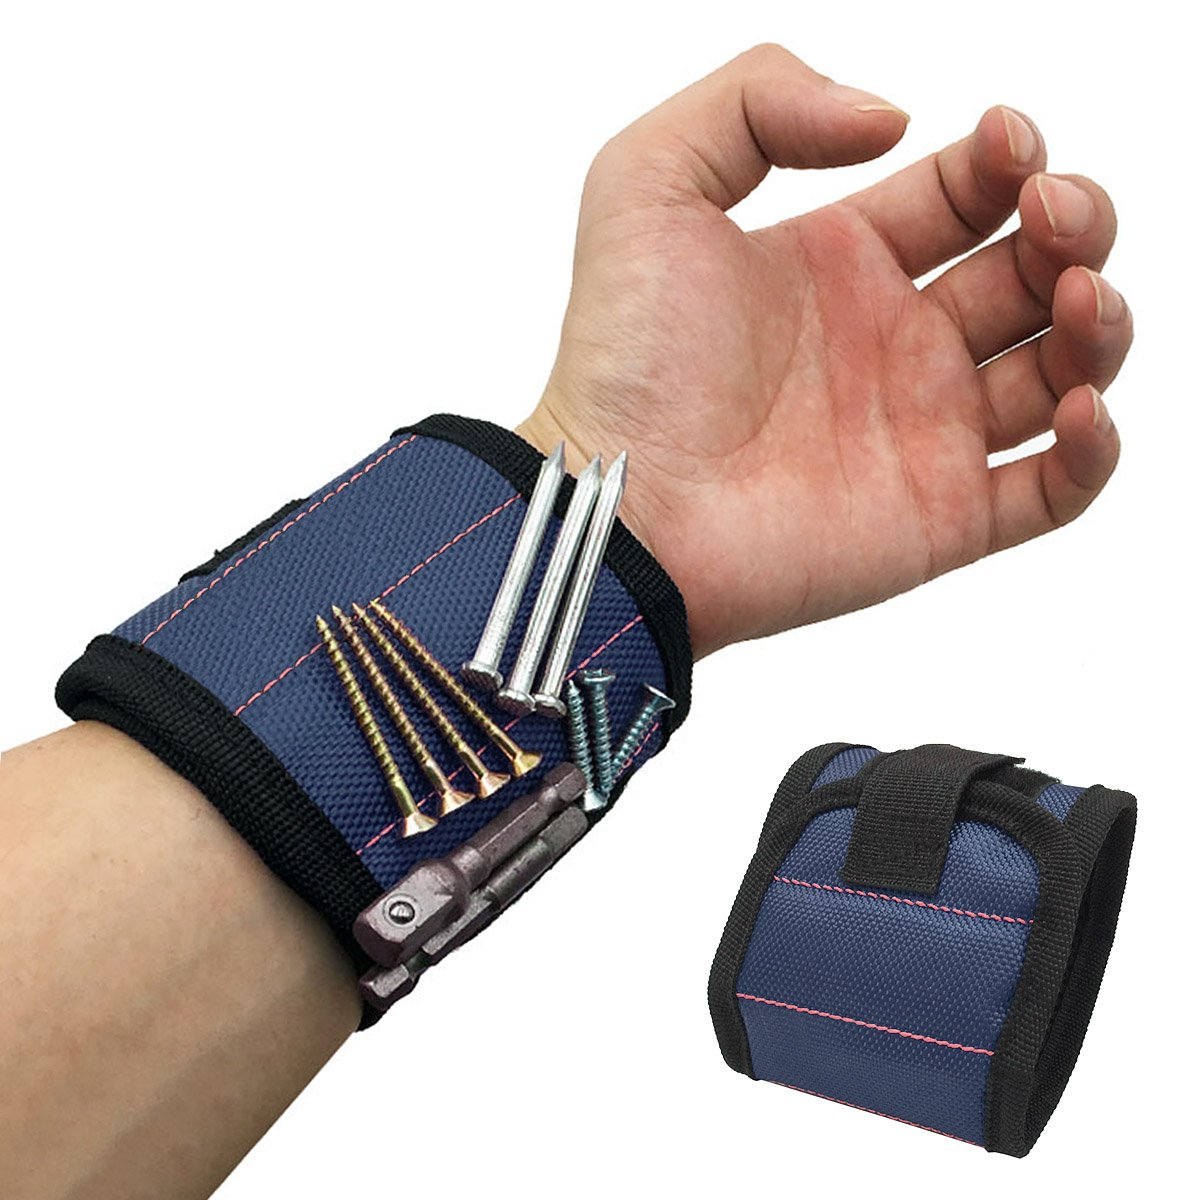 Magnetic Wristband Magnets Holding Screws Nails Drill Bits Gifts Gadgets Tools Gift For Men Him Dad DIY Handyman Electrician Husband Boyfriend Father Women